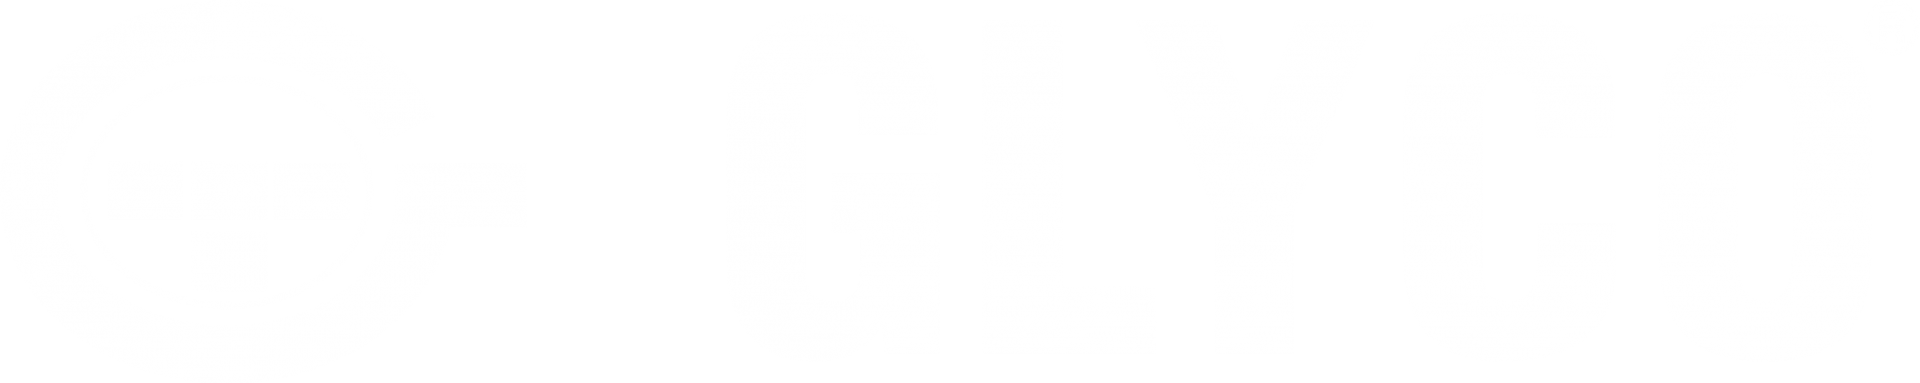 glyco-1-logo-transparent